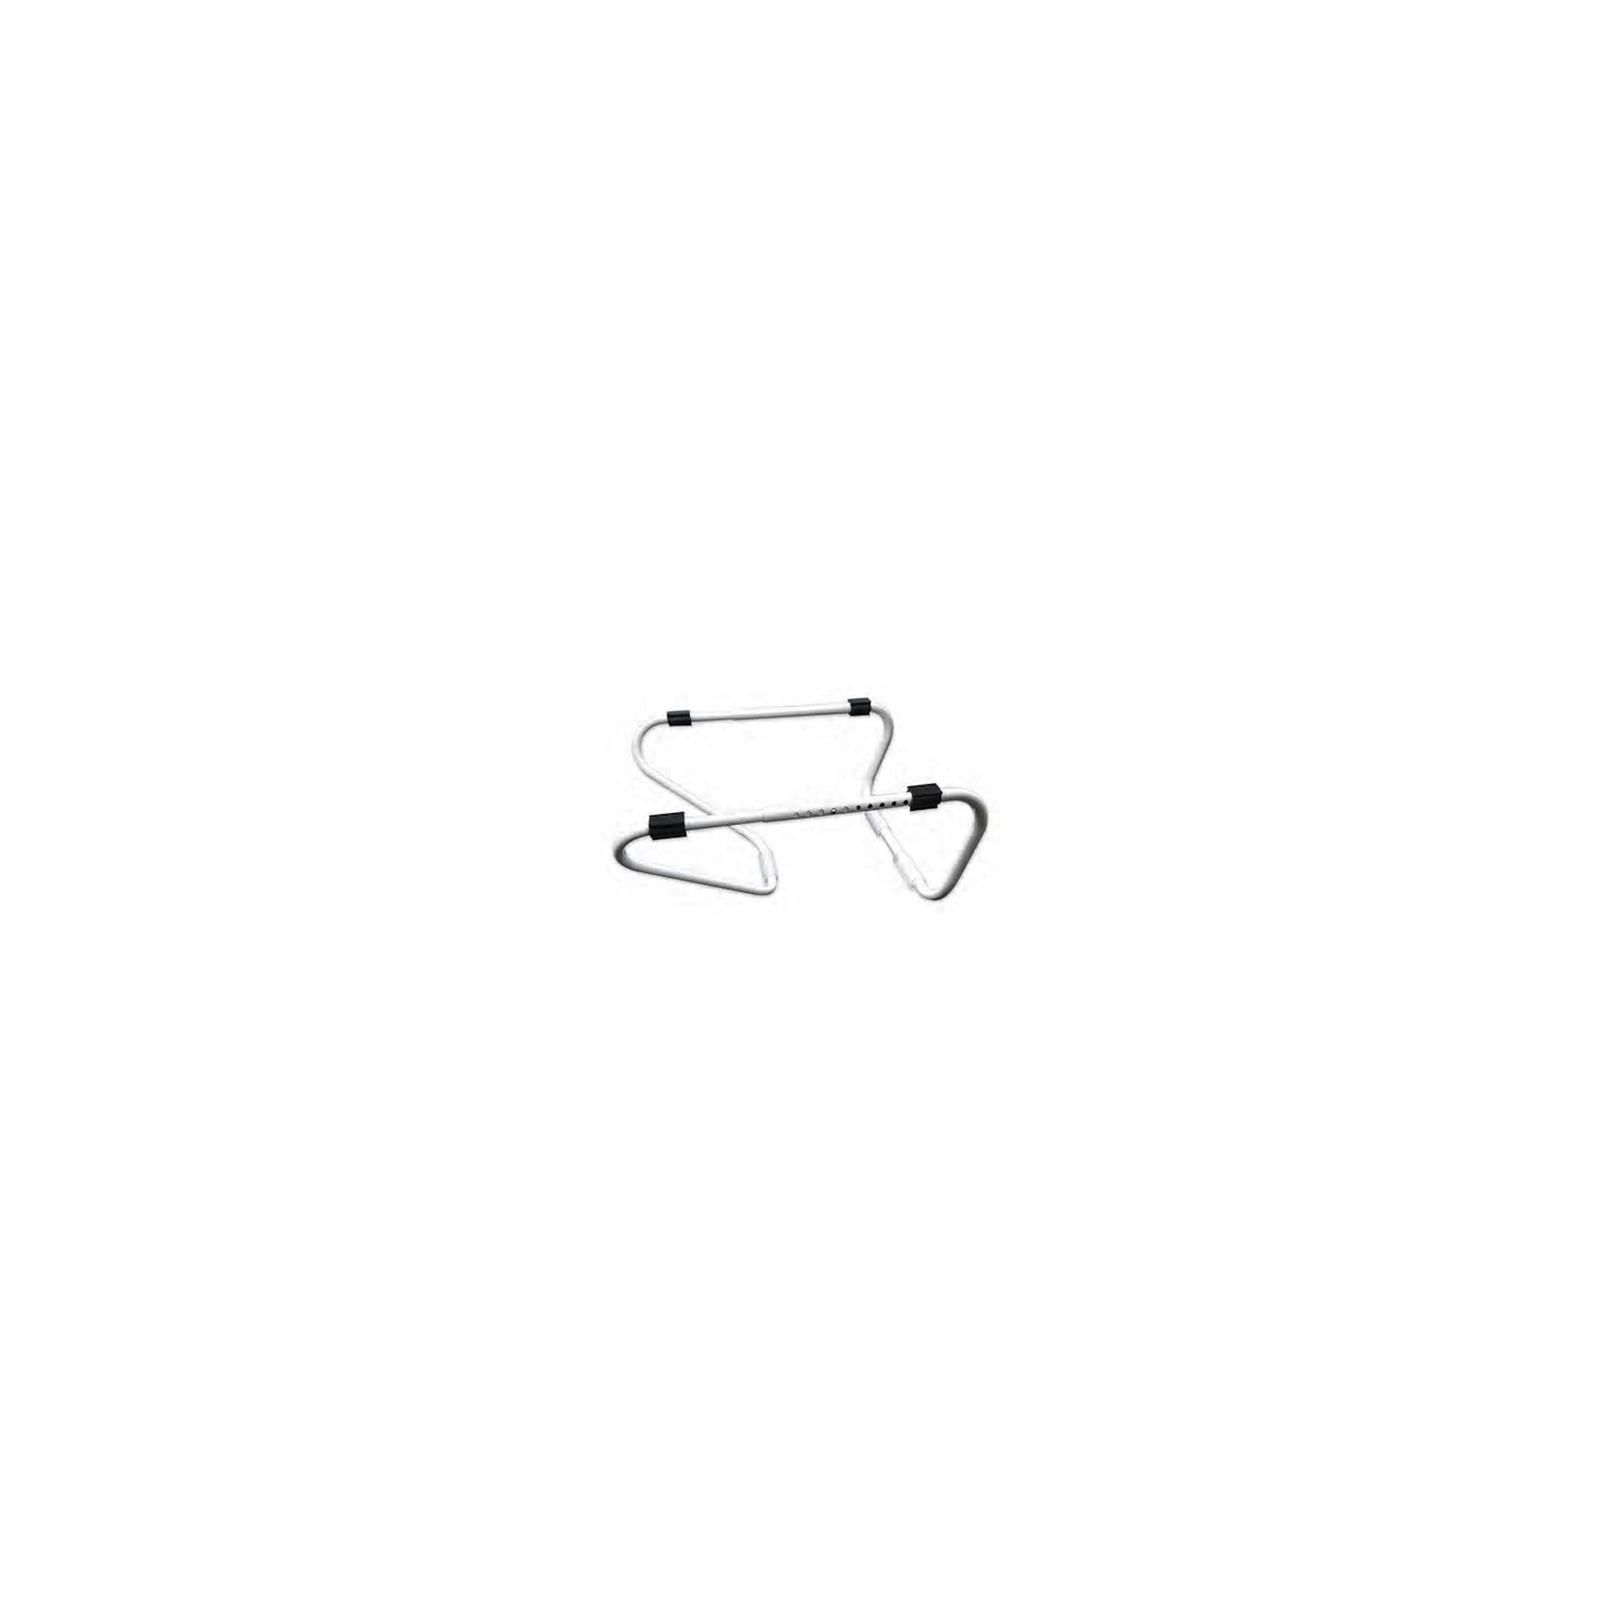 ACBNT2 Frost King Air Conditioner Support Bracket - Quantity 1